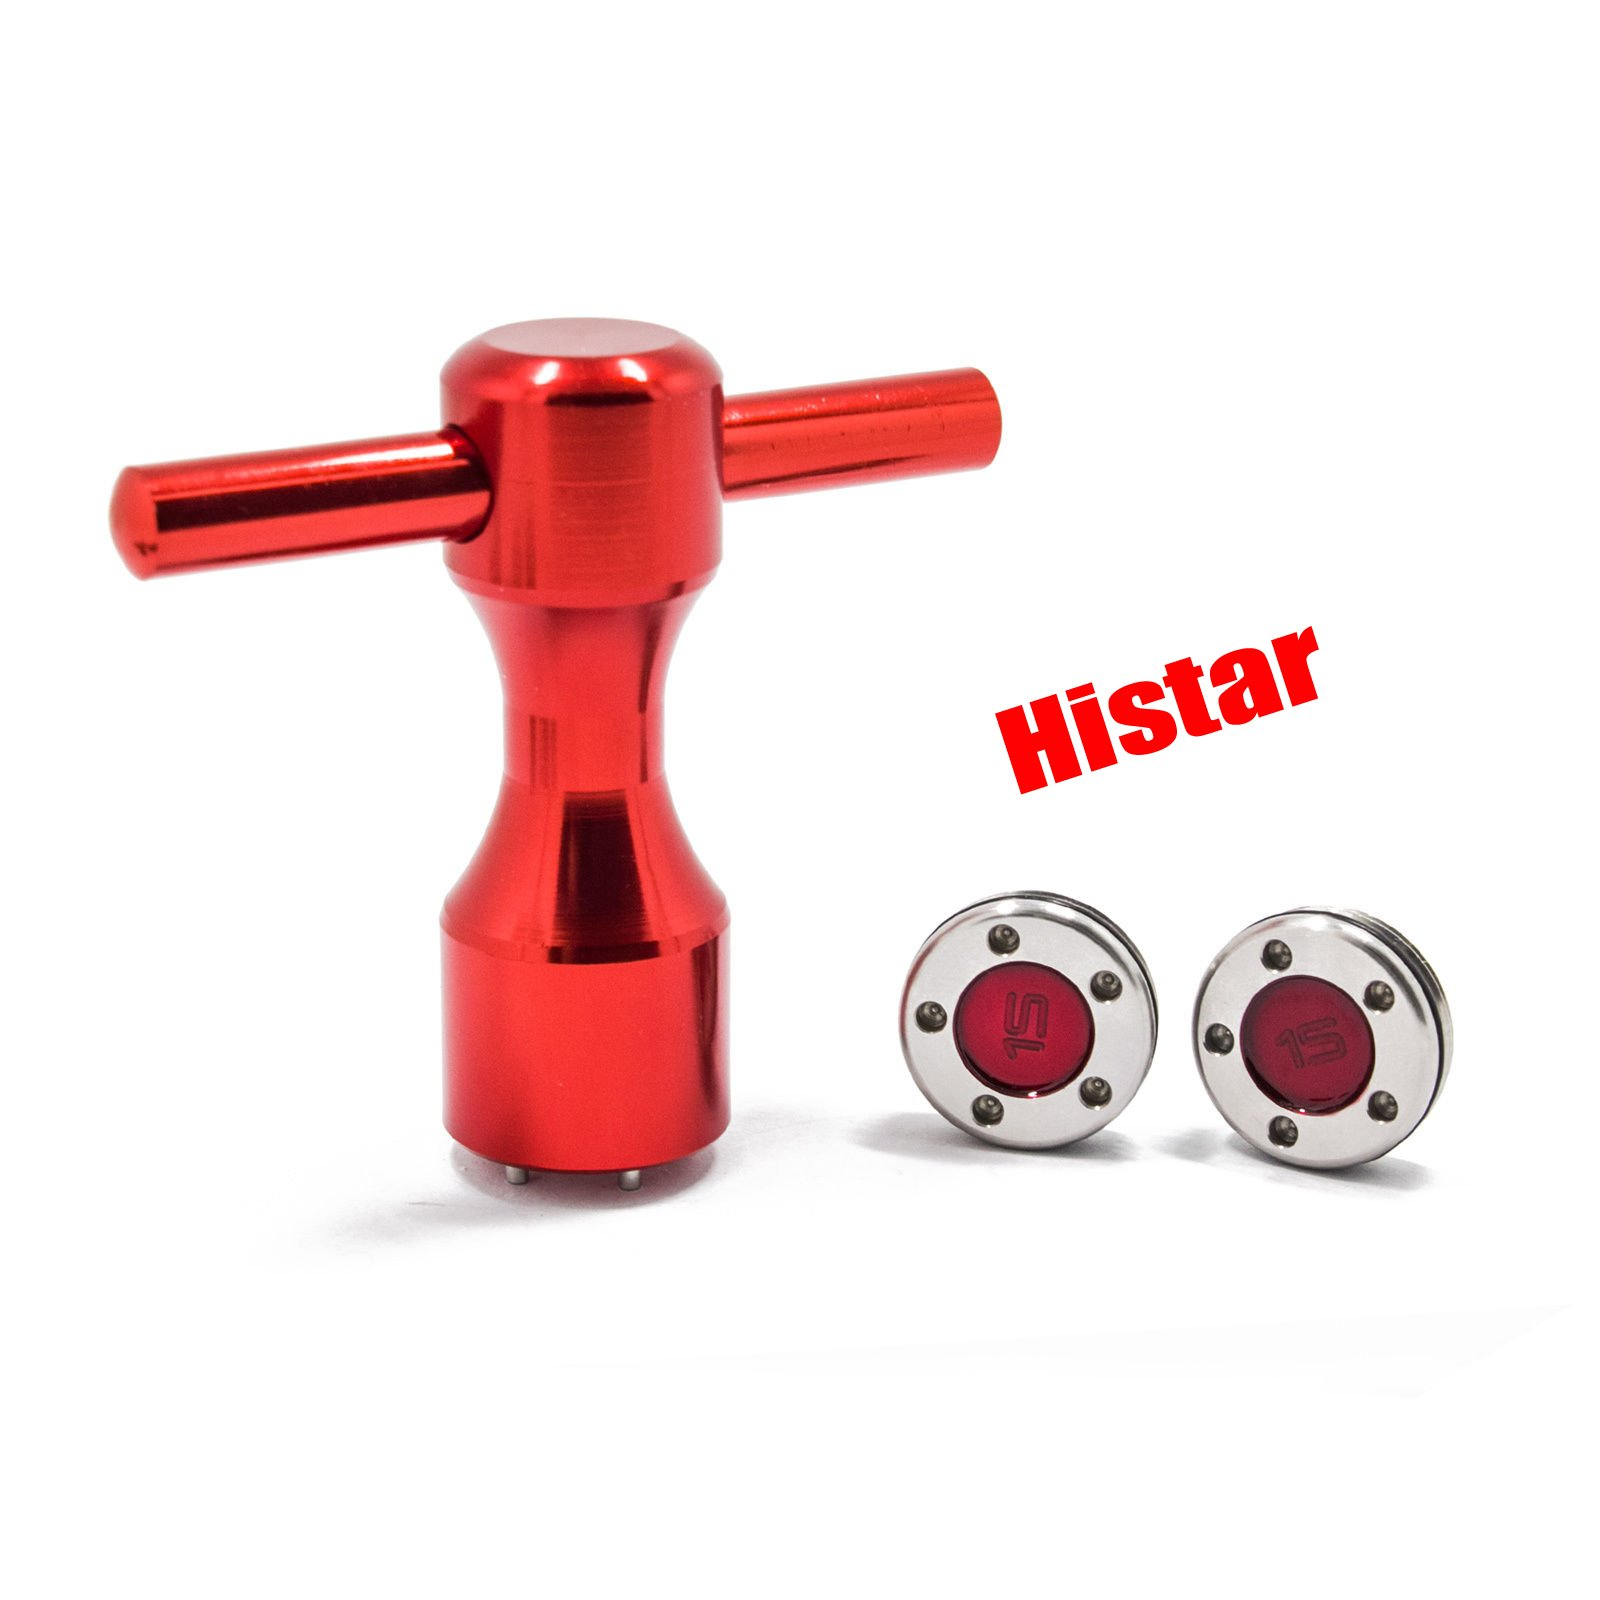 HISTAR 2Pcs Golf Custom red Weights + Red Wrench for Titleist Scotty Cameron Putters by HISTAR